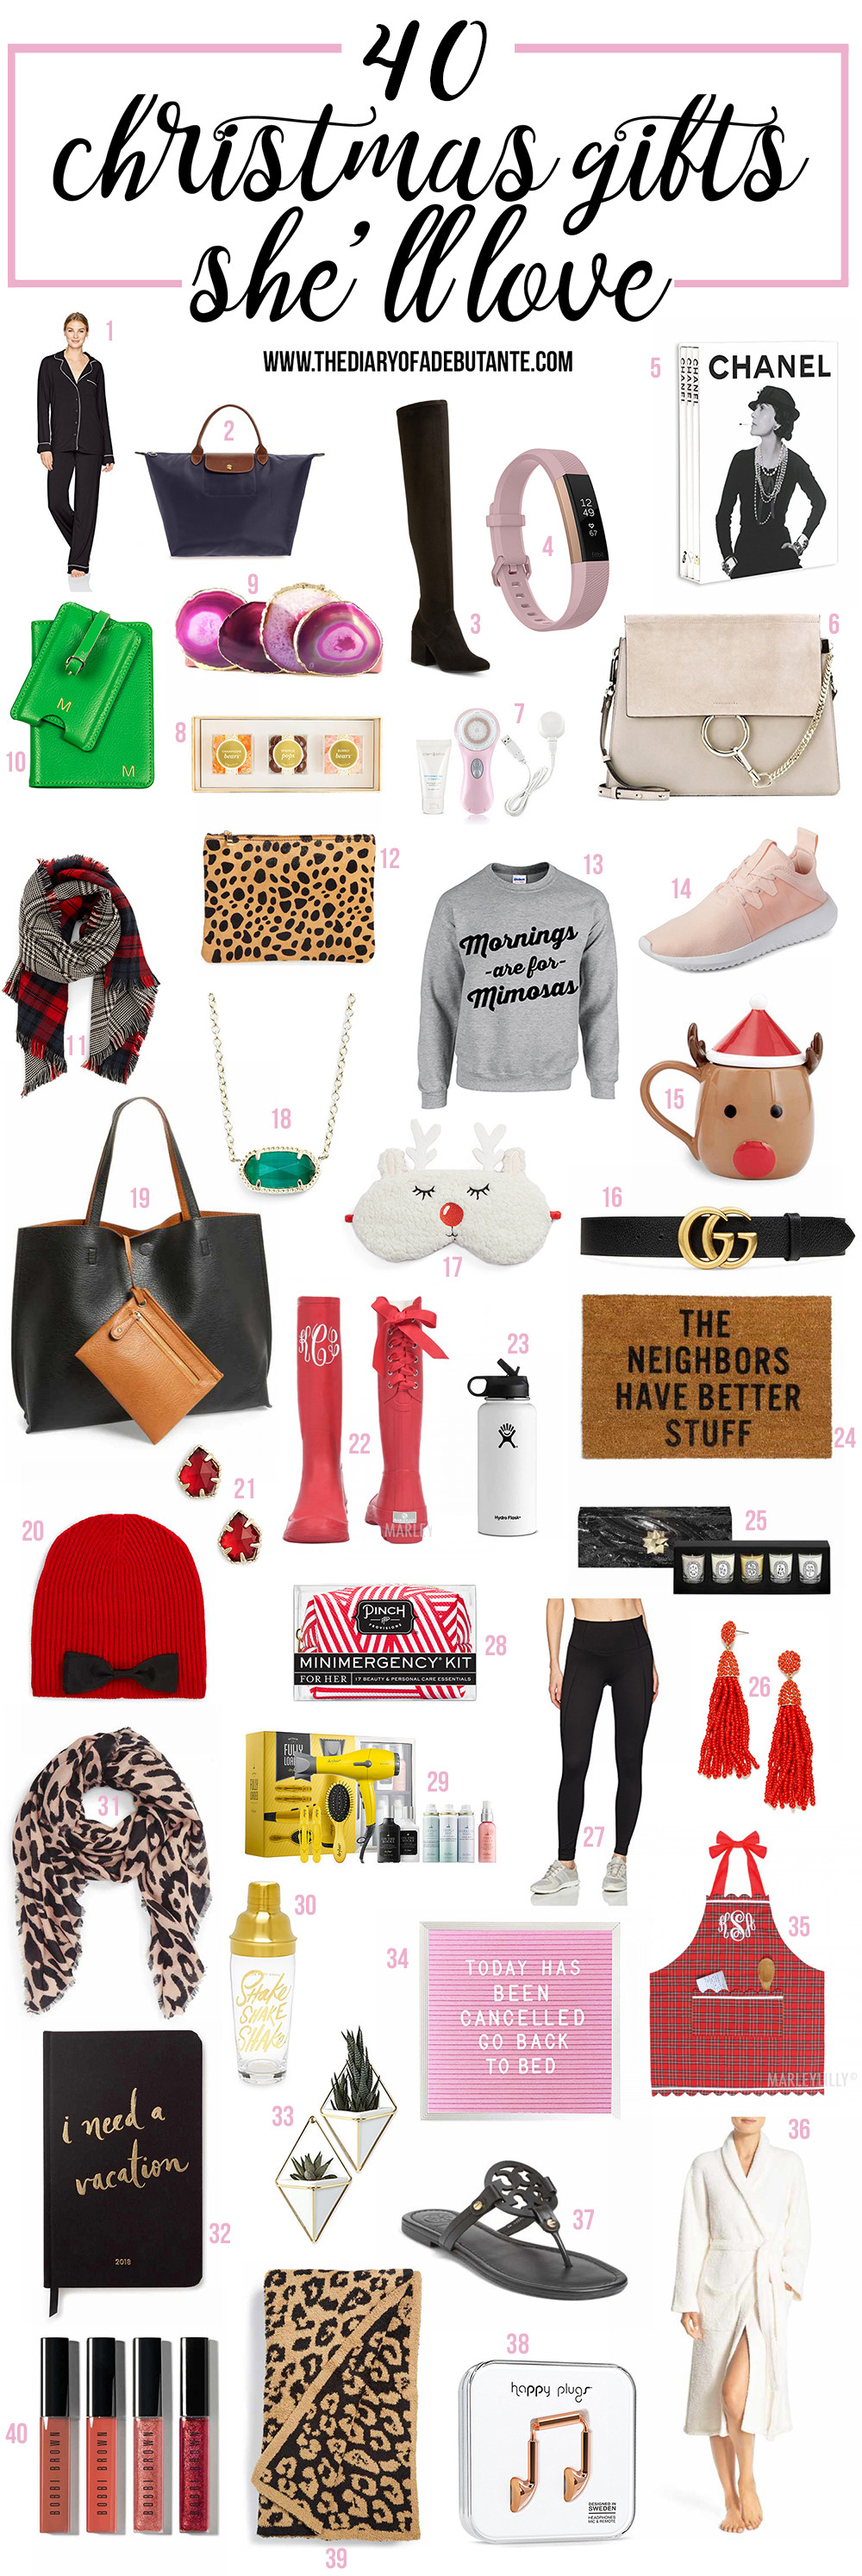 Best ideas about Girlfriend Gift Ideas Christmas . Save or Pin Cool Gift Ideas for Girlfriend Mom or BFF this Holiday Now.